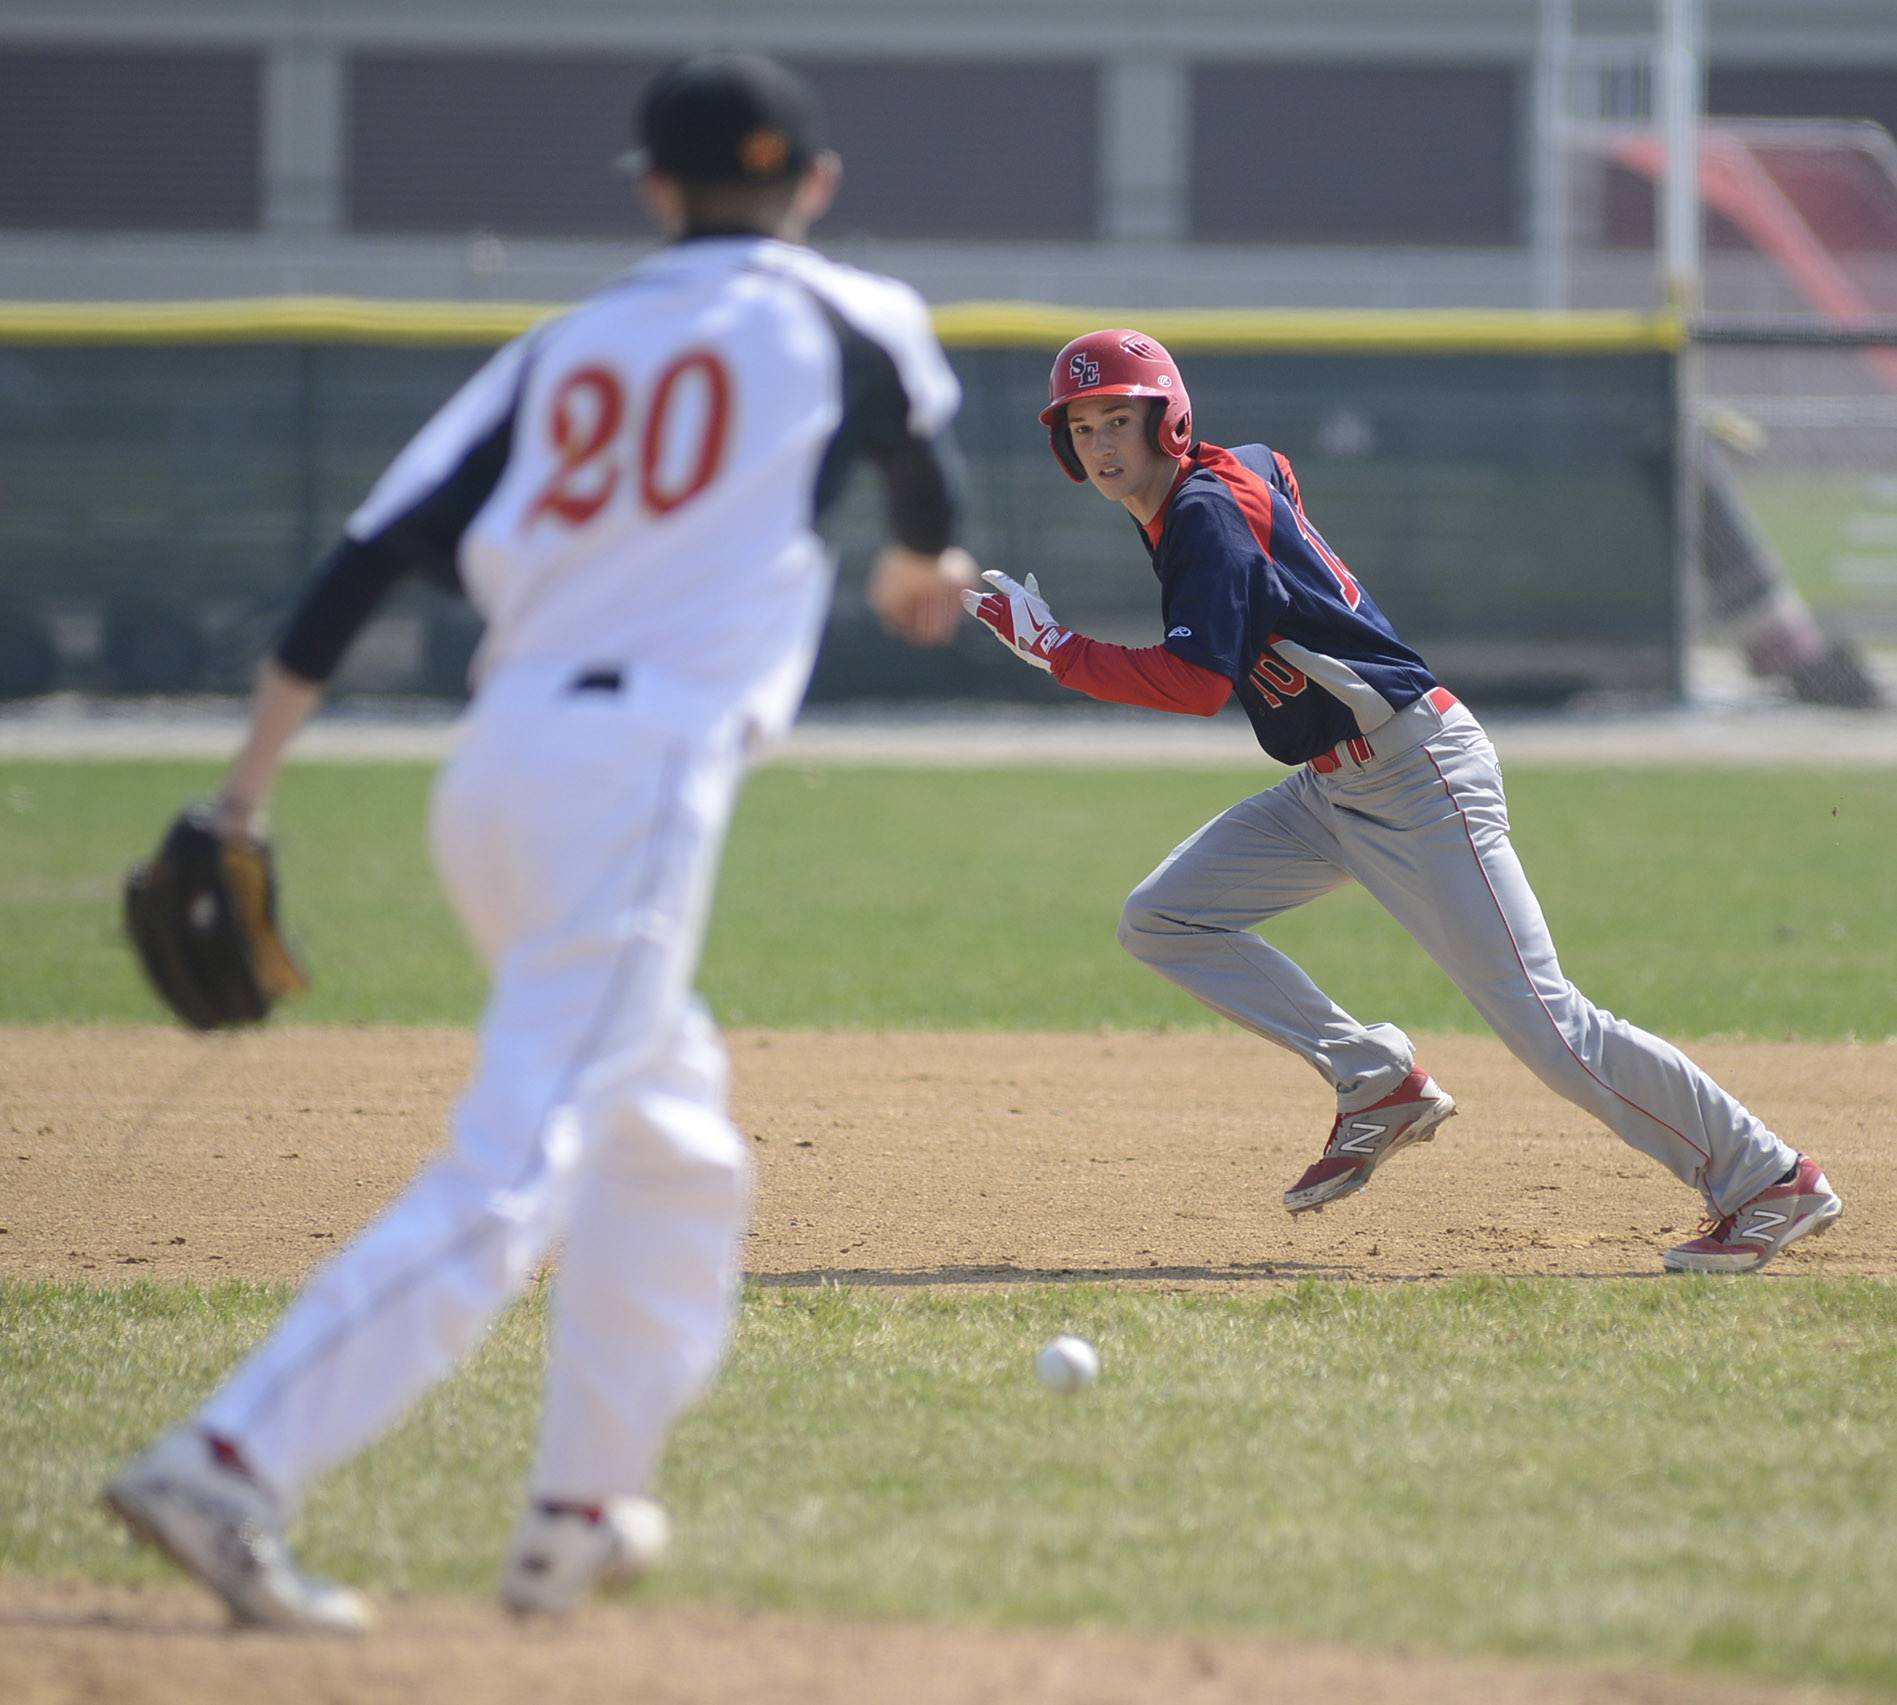 South Elgin's Danny Asa sprints for second base and past Batavia pitcher Colby Green after a ball is hit between the bases in the second inning on Friday.